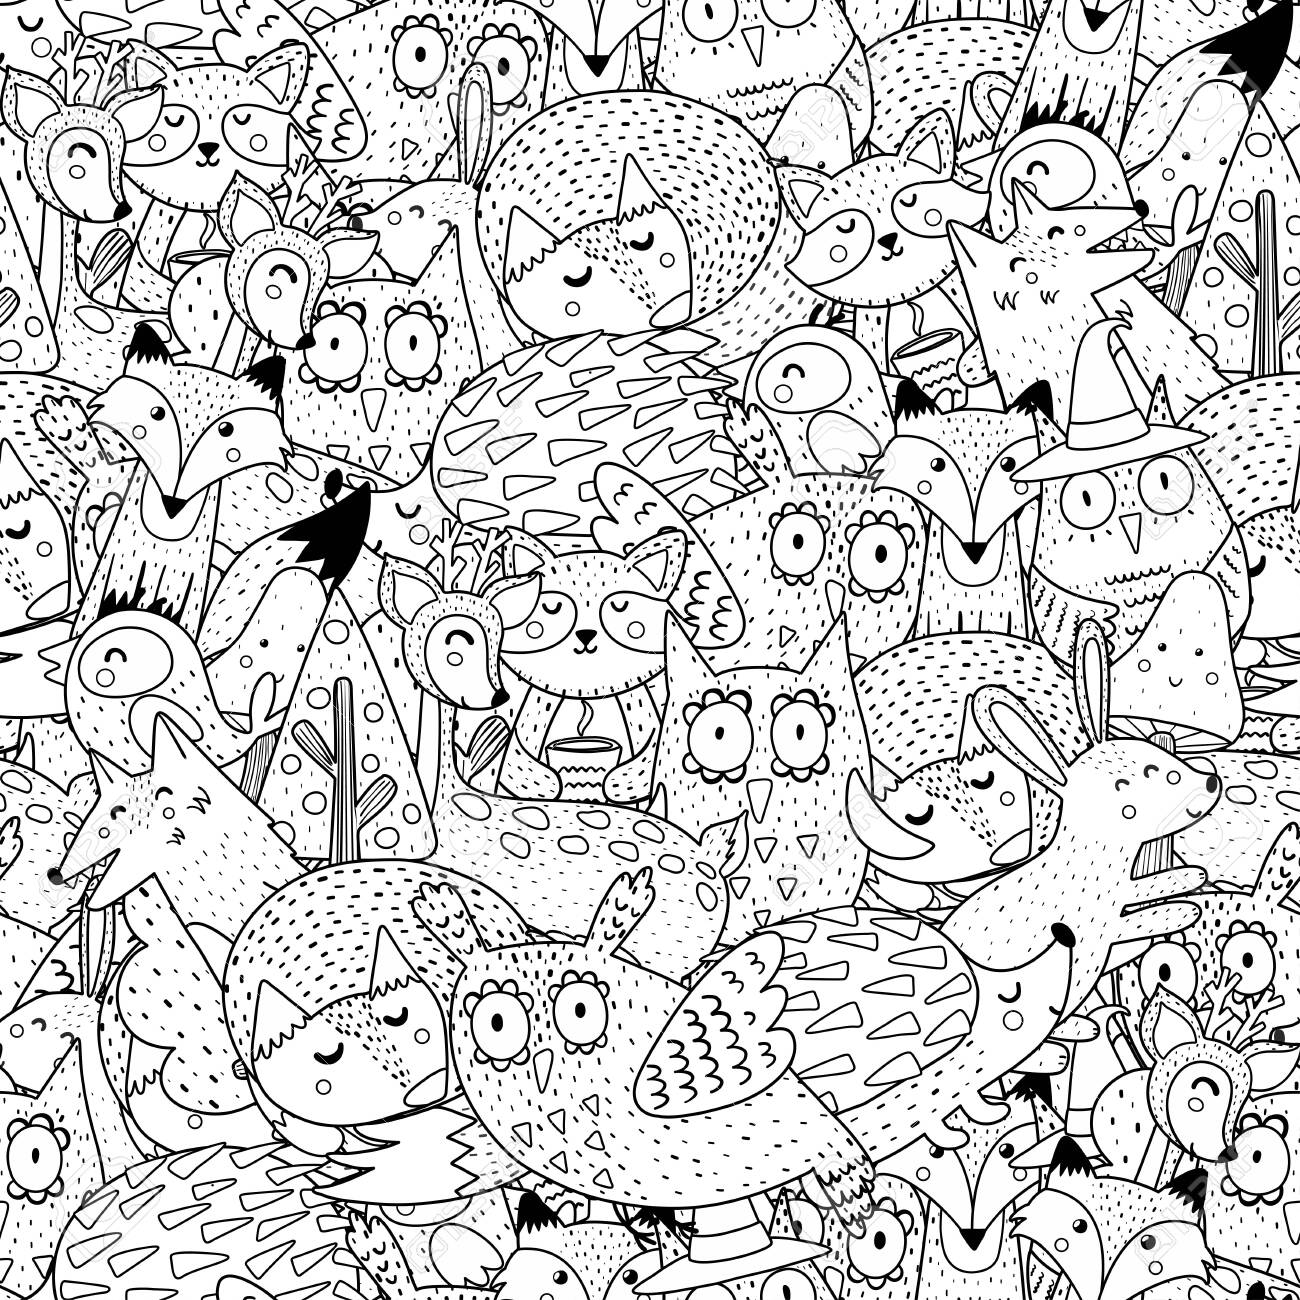 Fantasy Forest Animals Black And White Seamless Pattern Great Royalty Free Cliparts Vectors And Stock Illustration Image 125653351